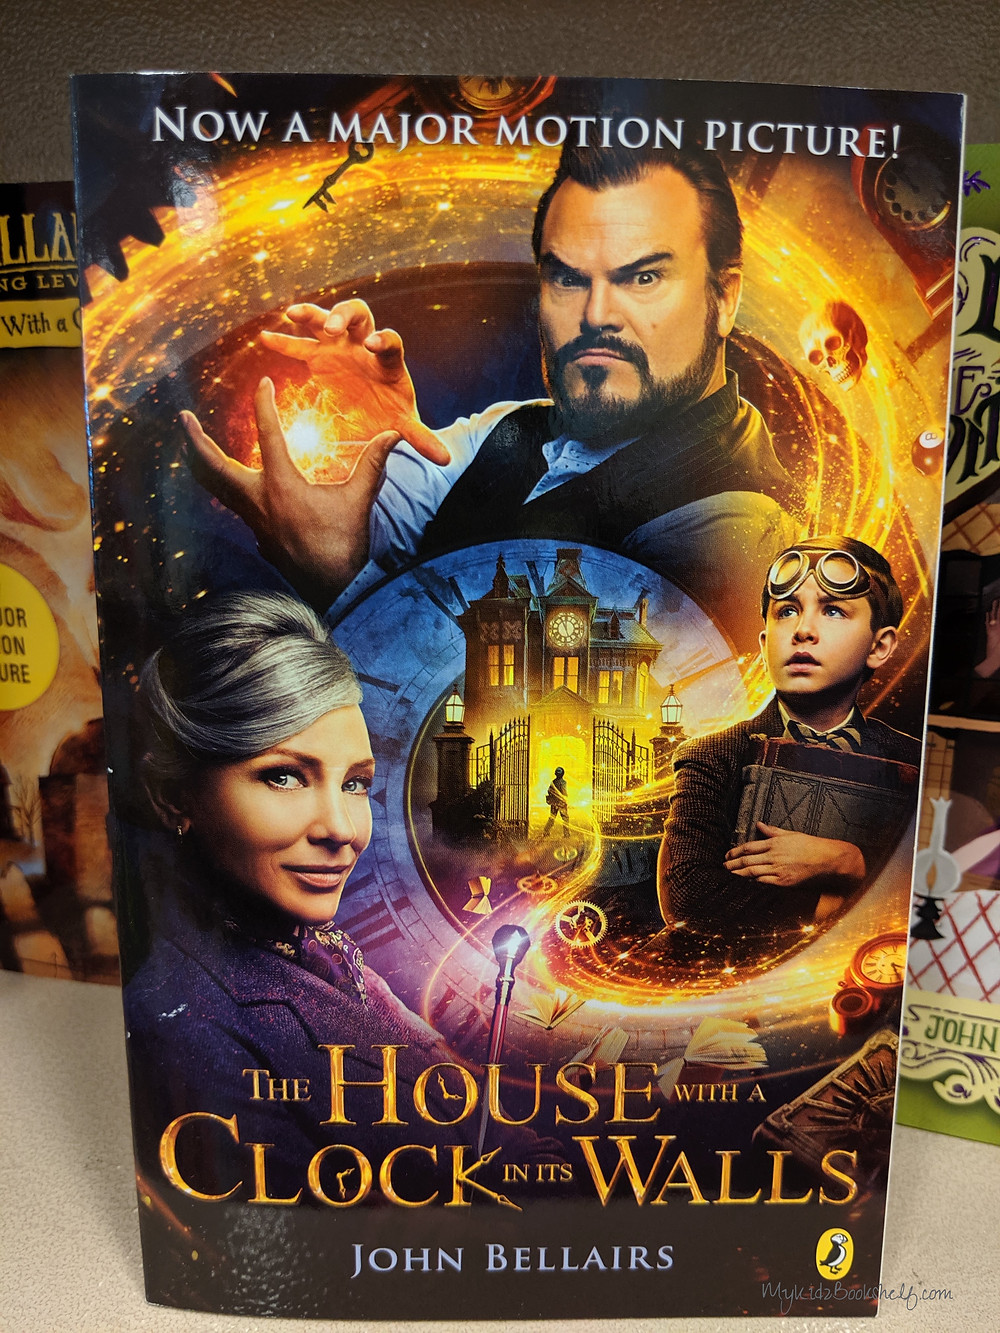 The-House-With-A-Clock-in-its-Walls book showing Jack Black and Cate Blanchett from the movie